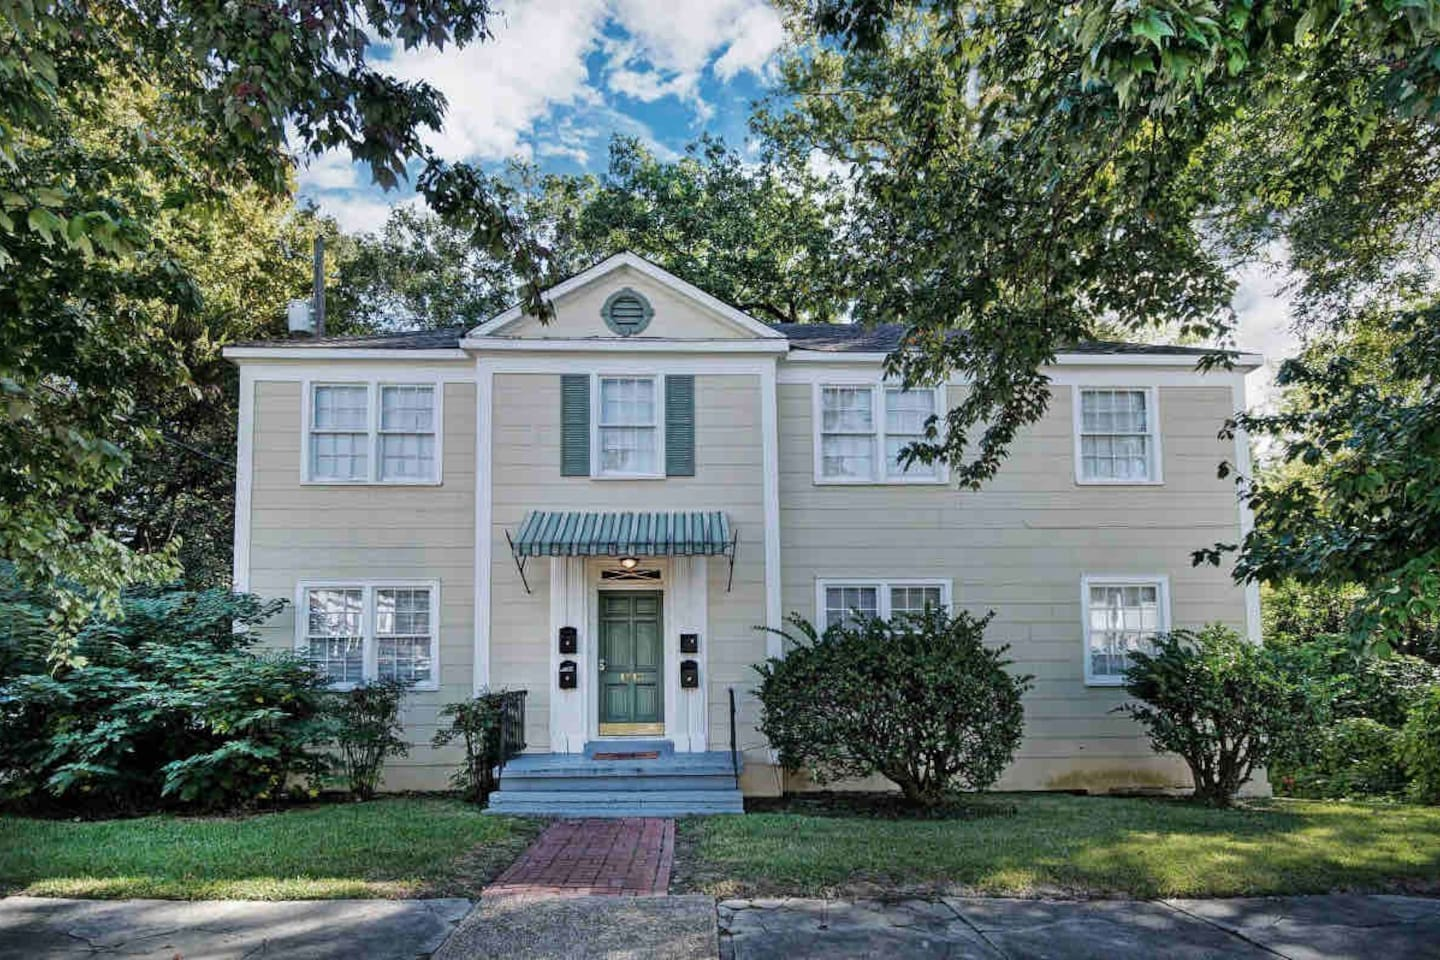 Beautiful Bellhaven apartment. Classic older apartment with lots of Style and Charm.